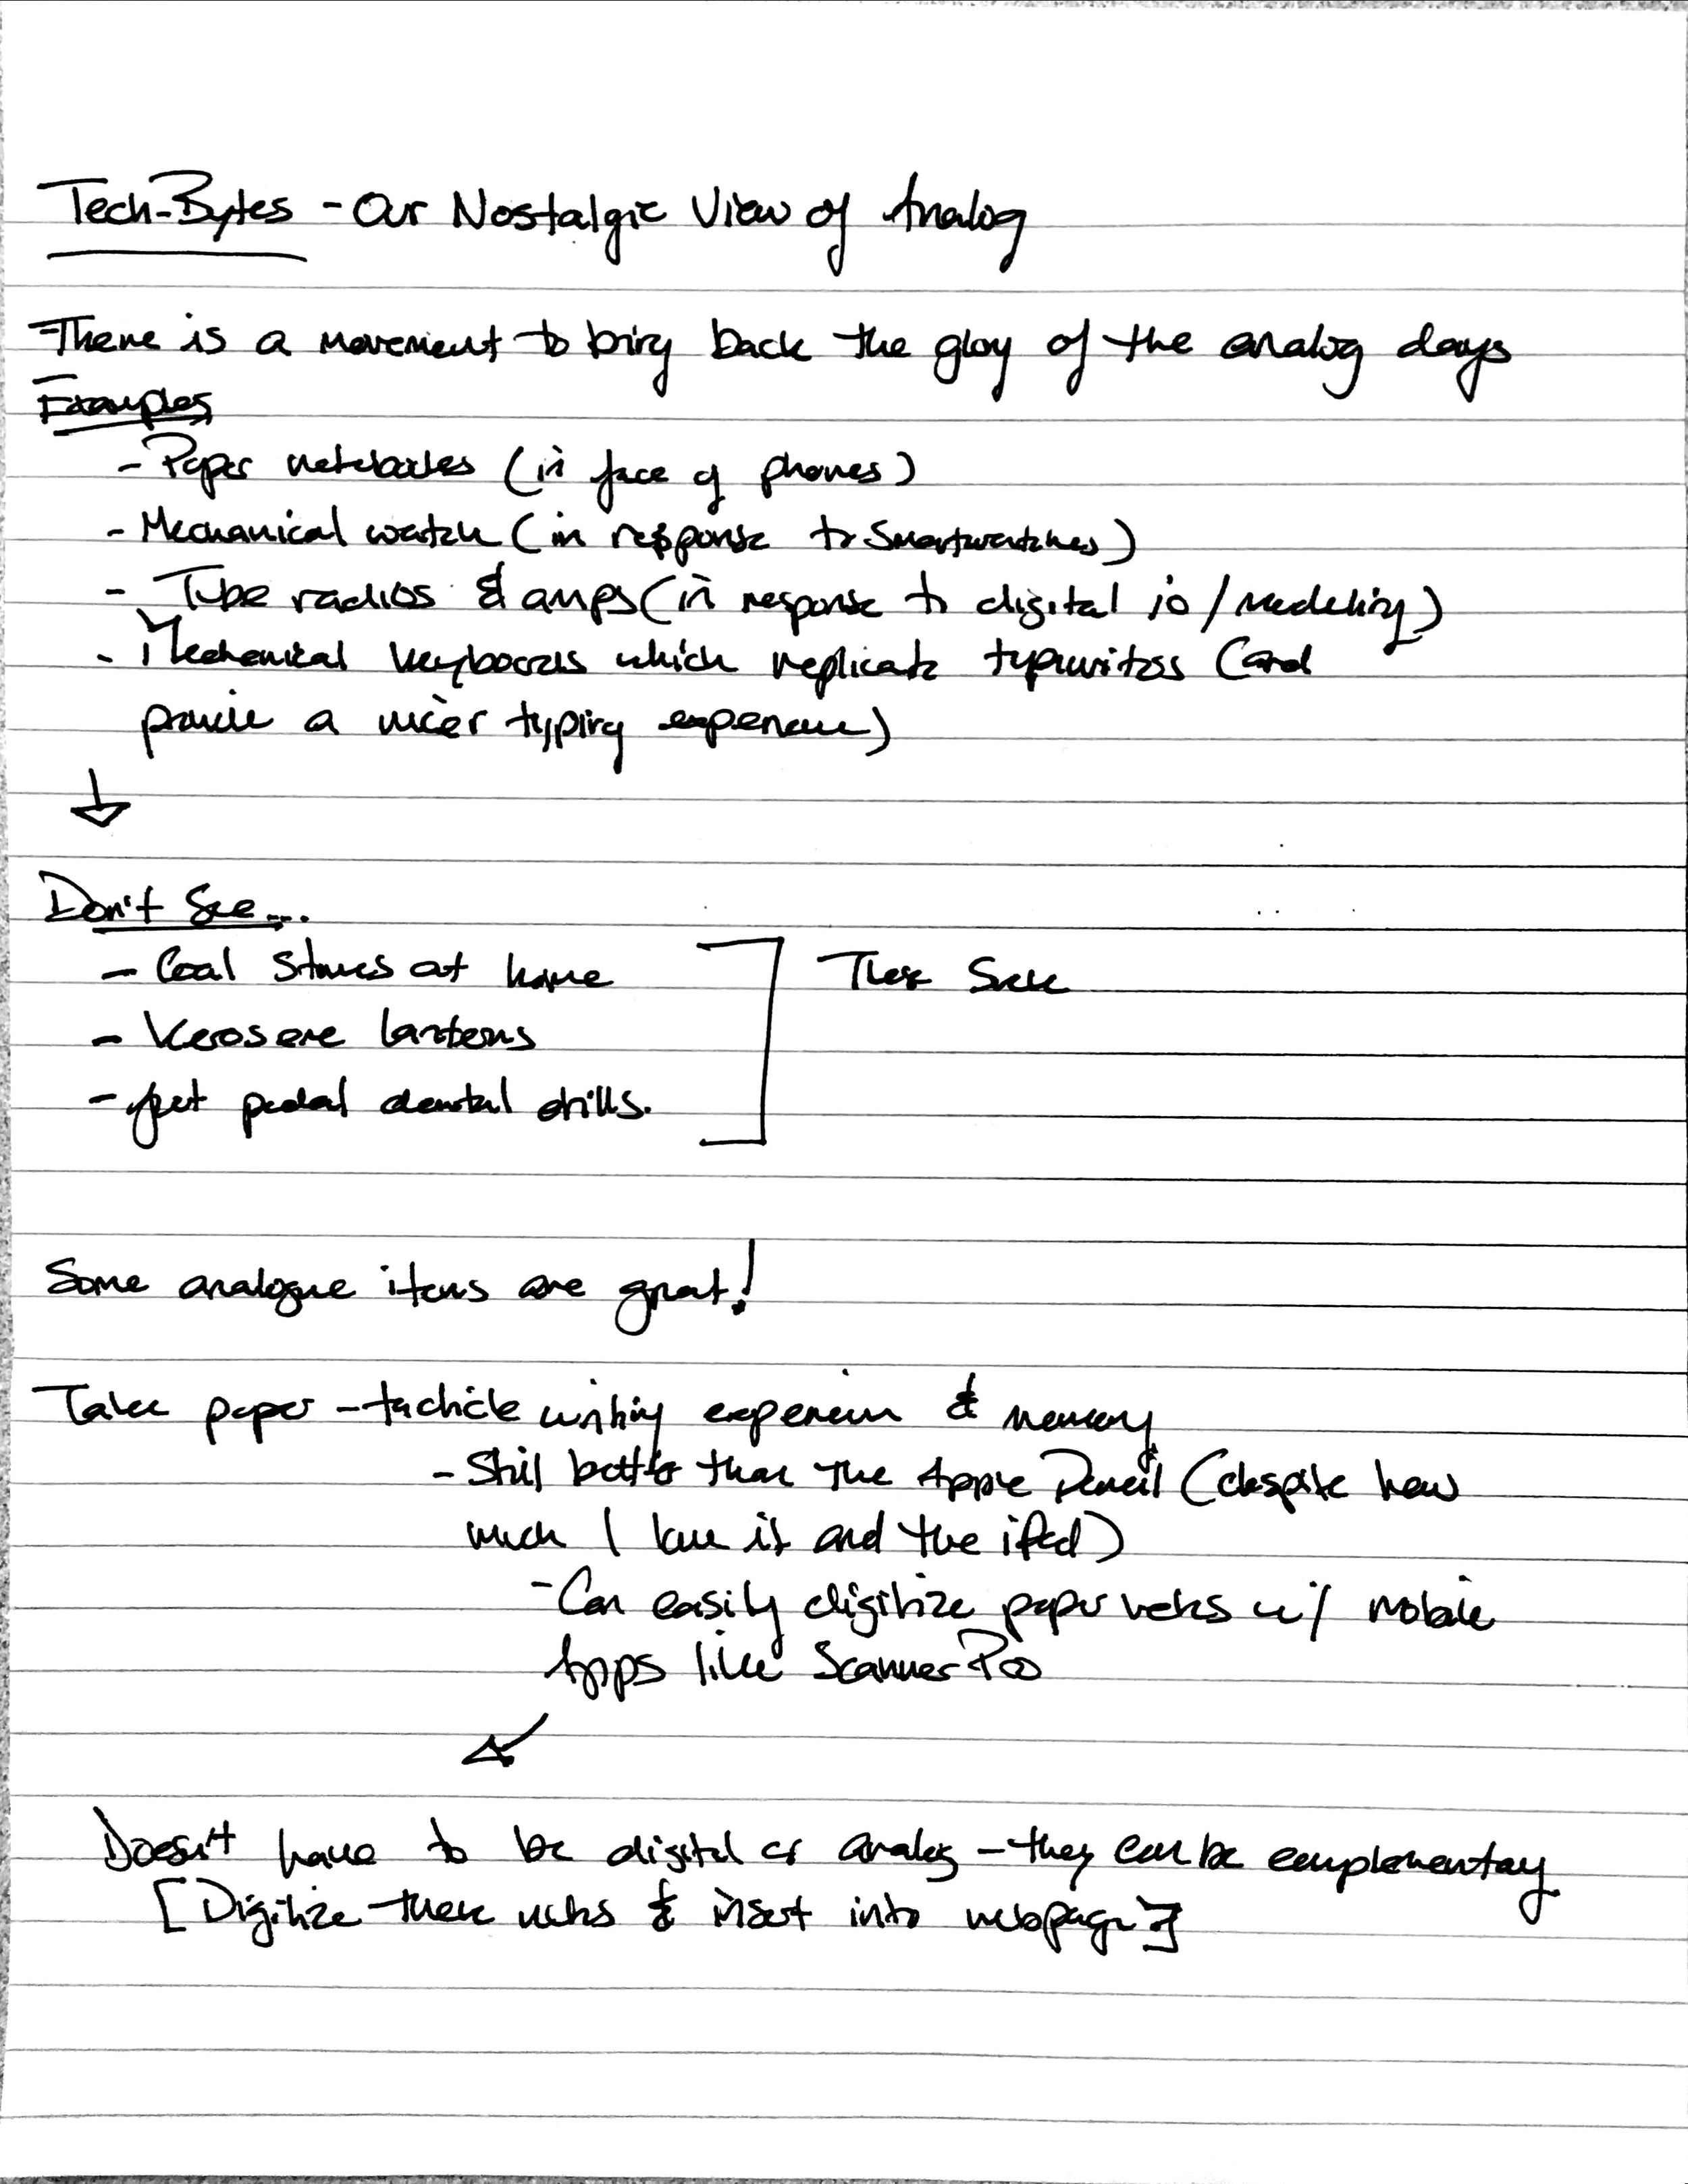 These notes were scanned using Scanner Pro